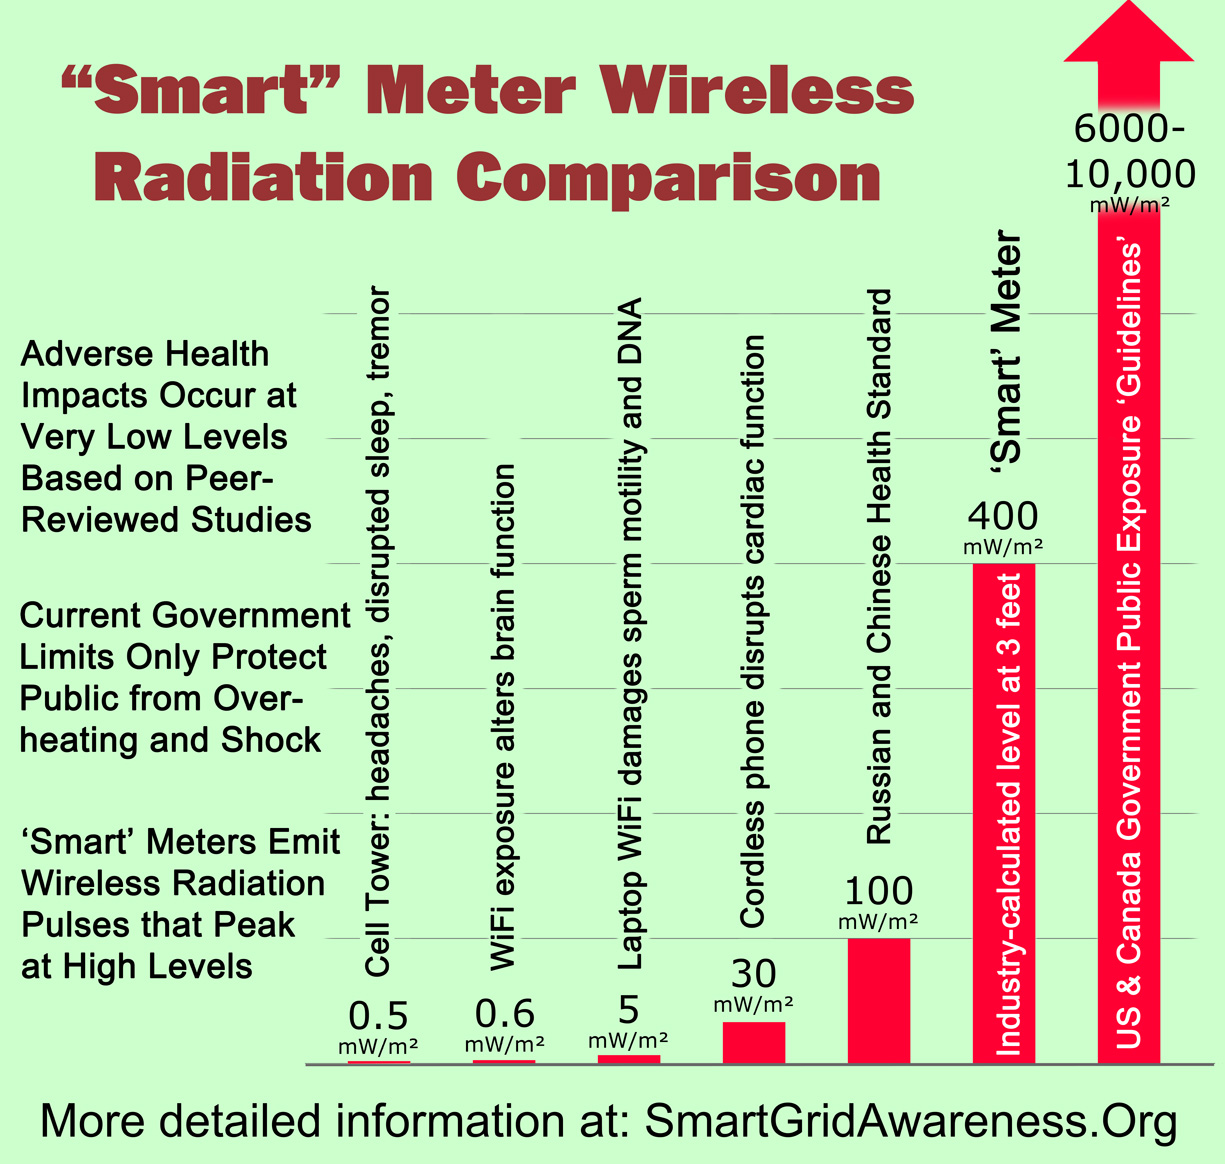 Radiofrequency (RF) Radiation Power Density Levels for Smart Meters, Various Biological Effects, and Exposure Guidelines